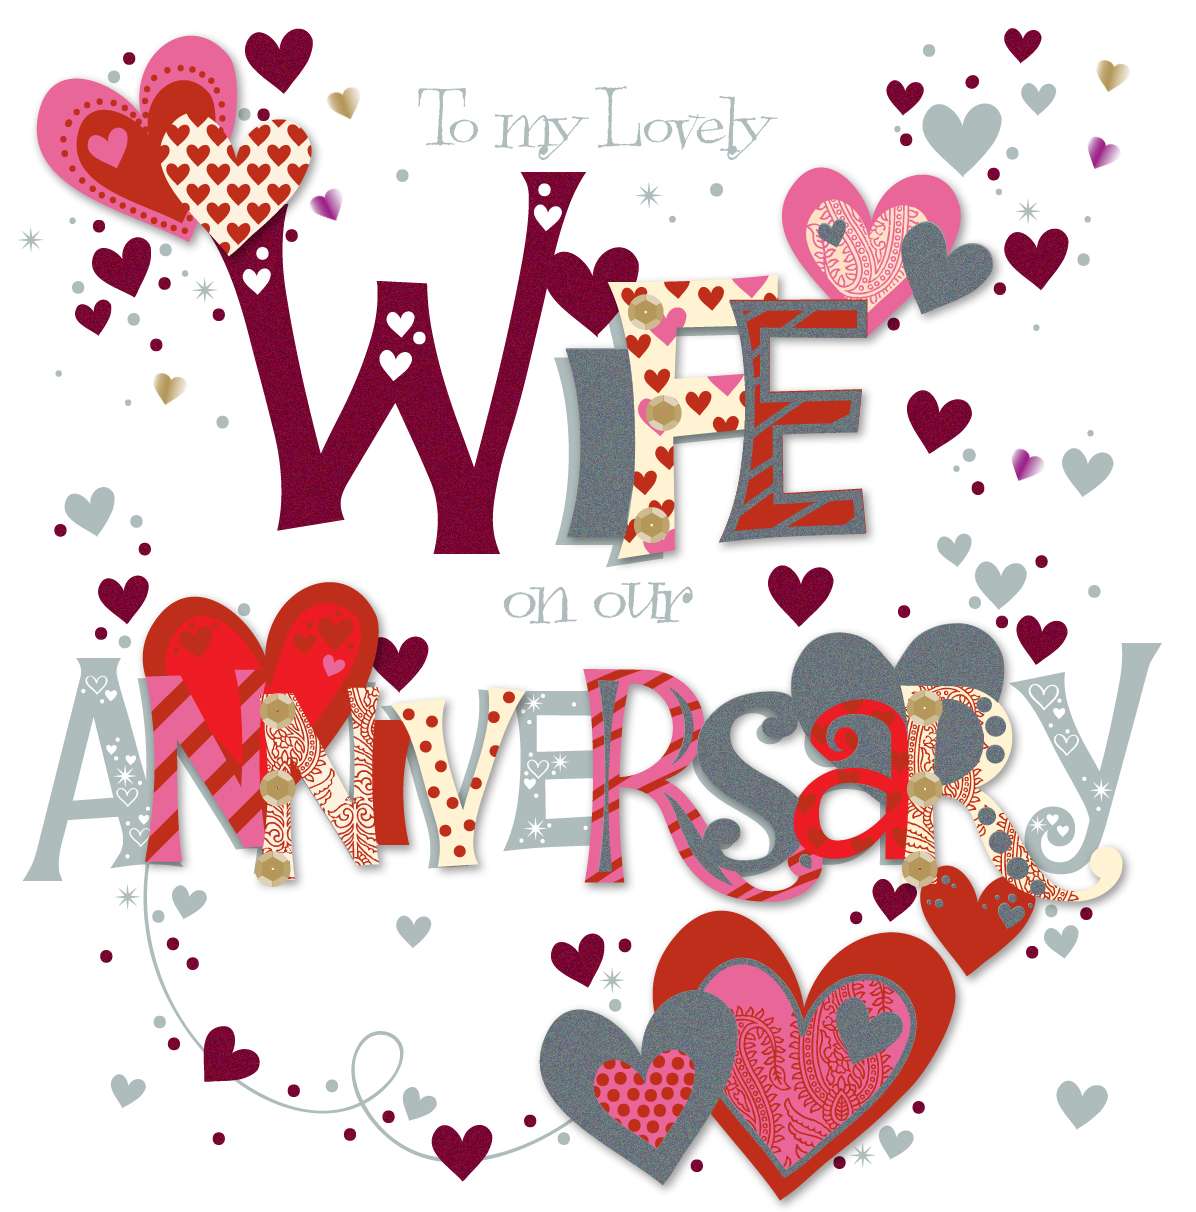 Lovely Wife Wedding Anniversary Greeting Card Cards Love Kates